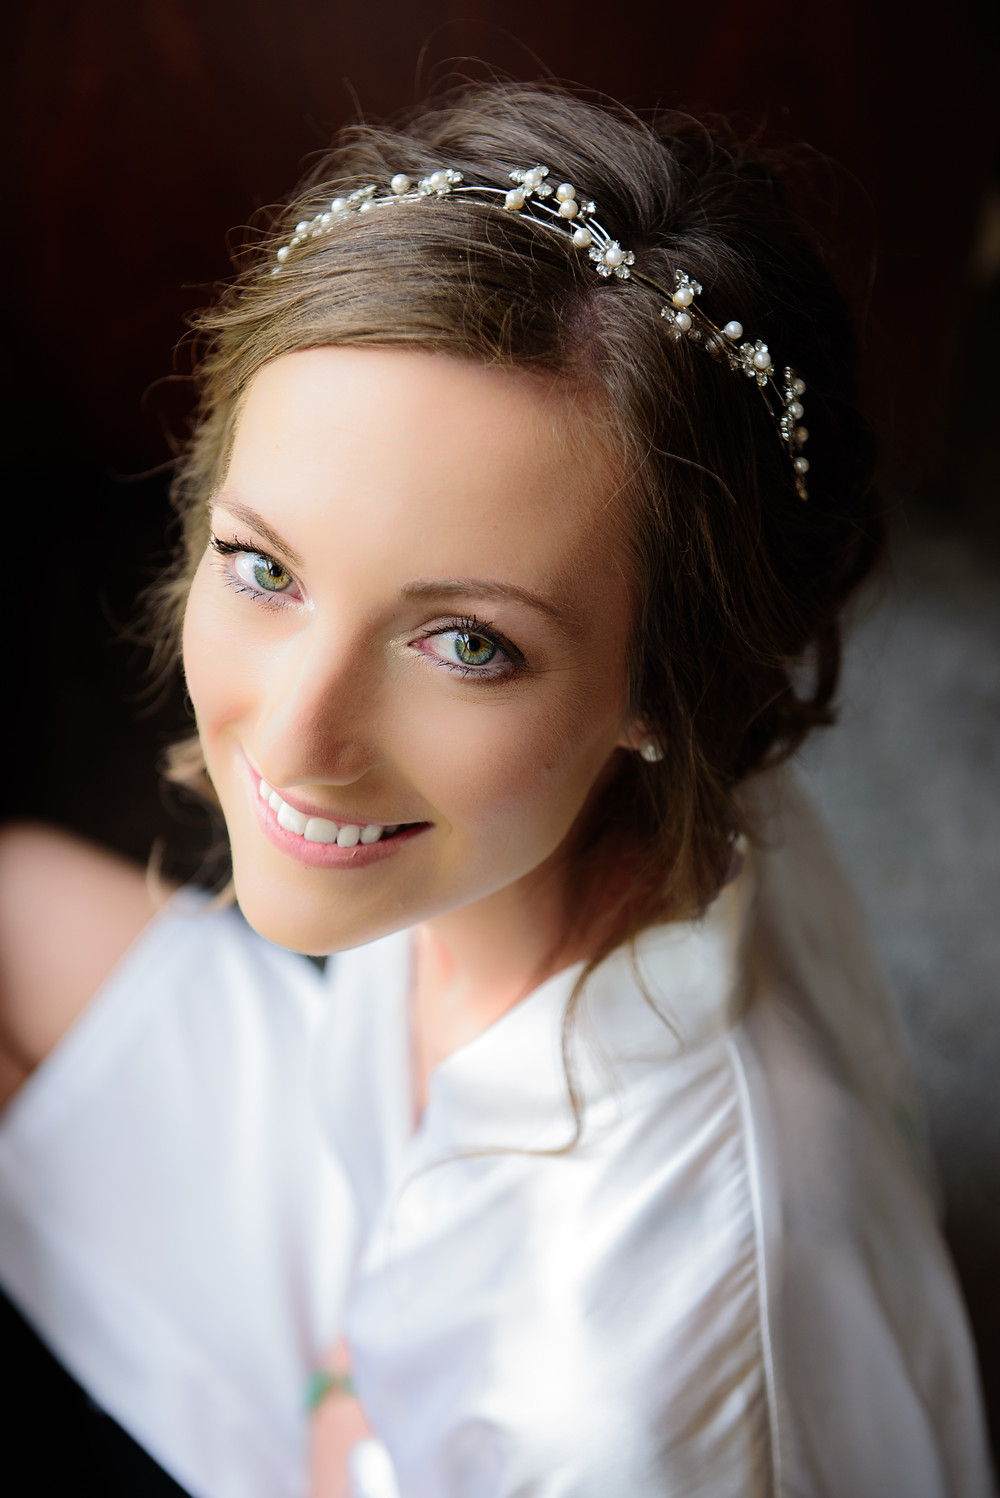 A portrait of the bride before the wedding.